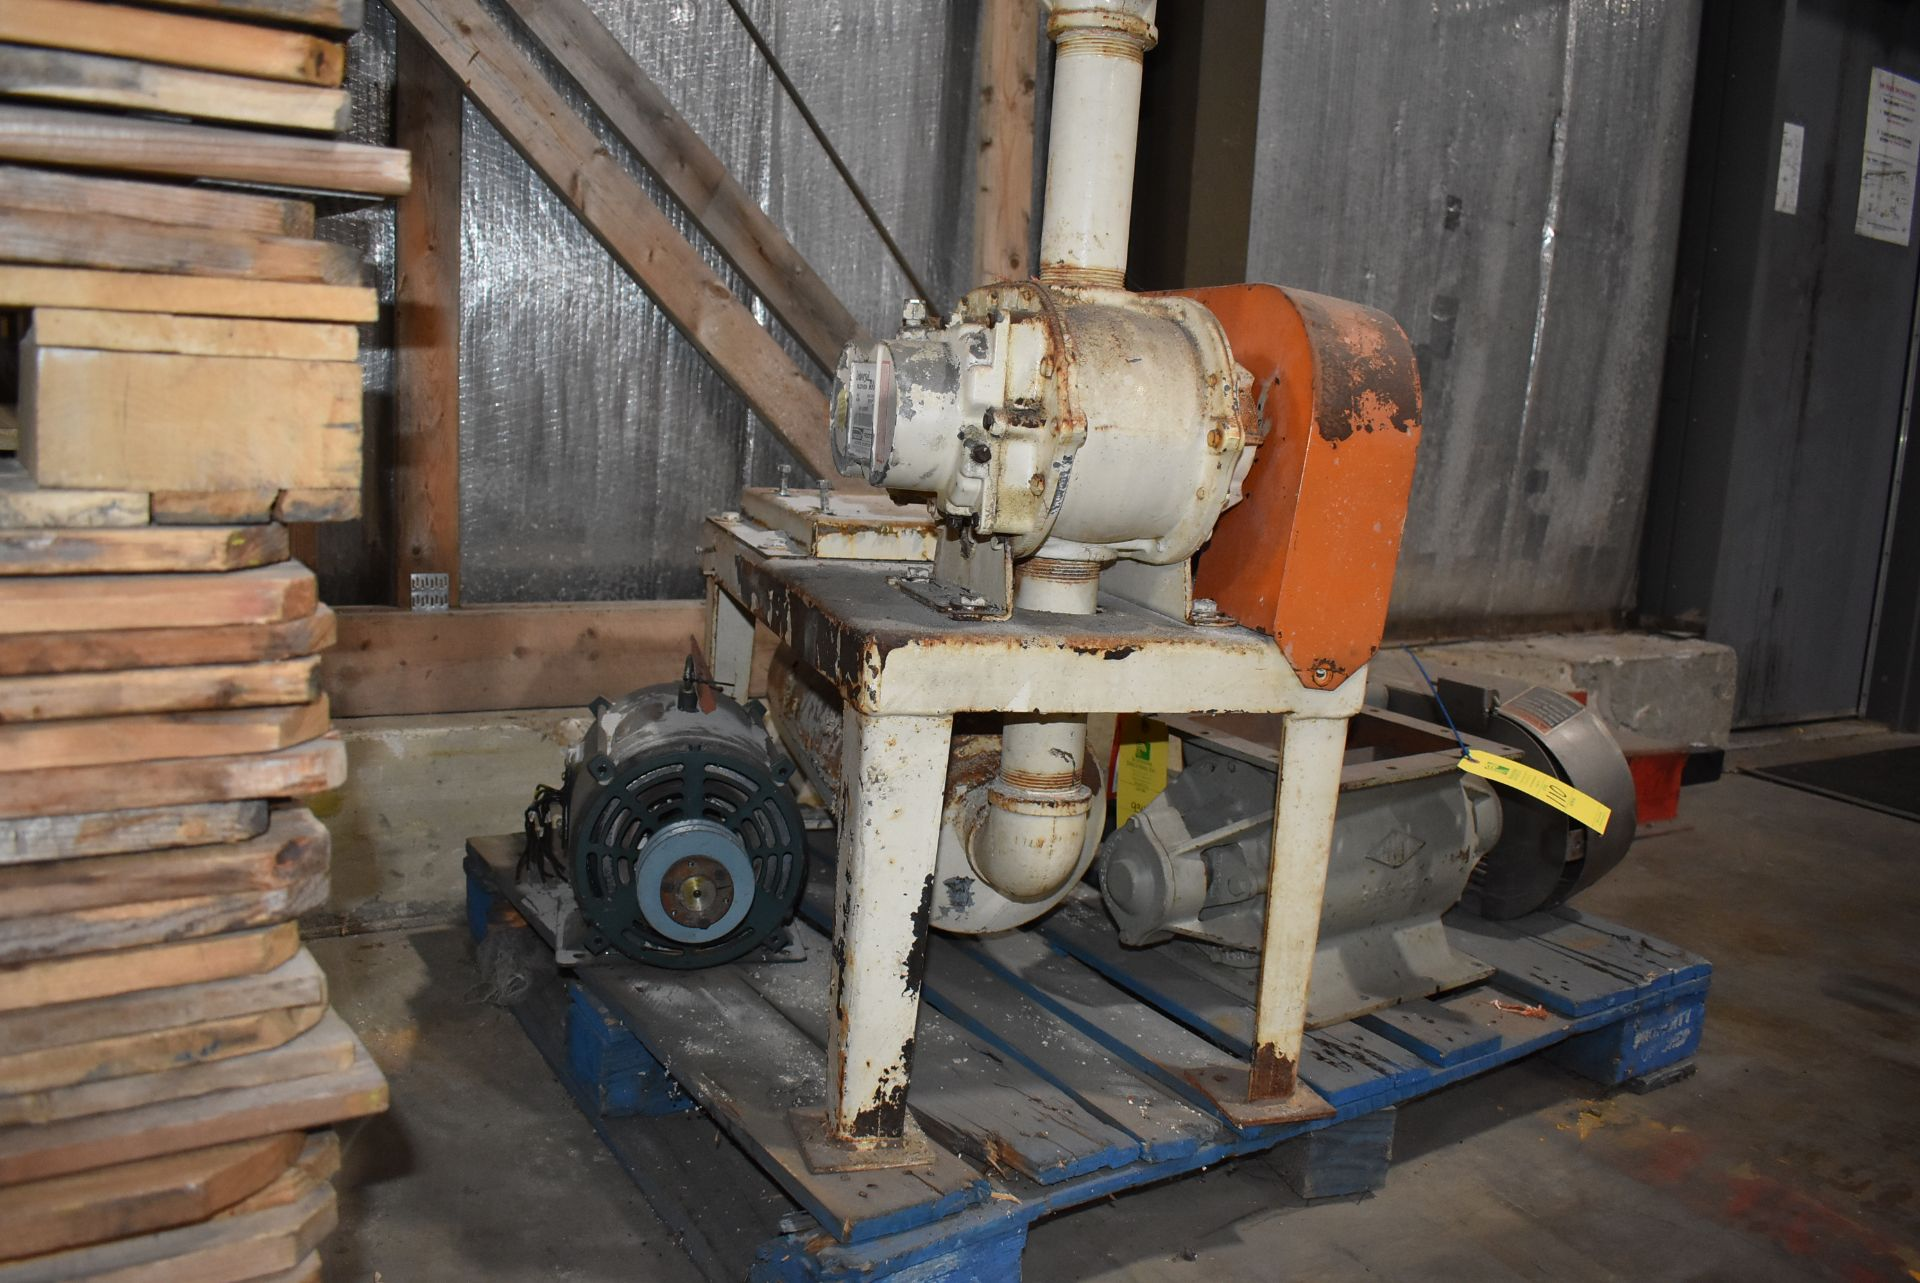 Plant Support Consisting of Air Lock, Base, 7 1/2 HP Motor - Image 2 of 2